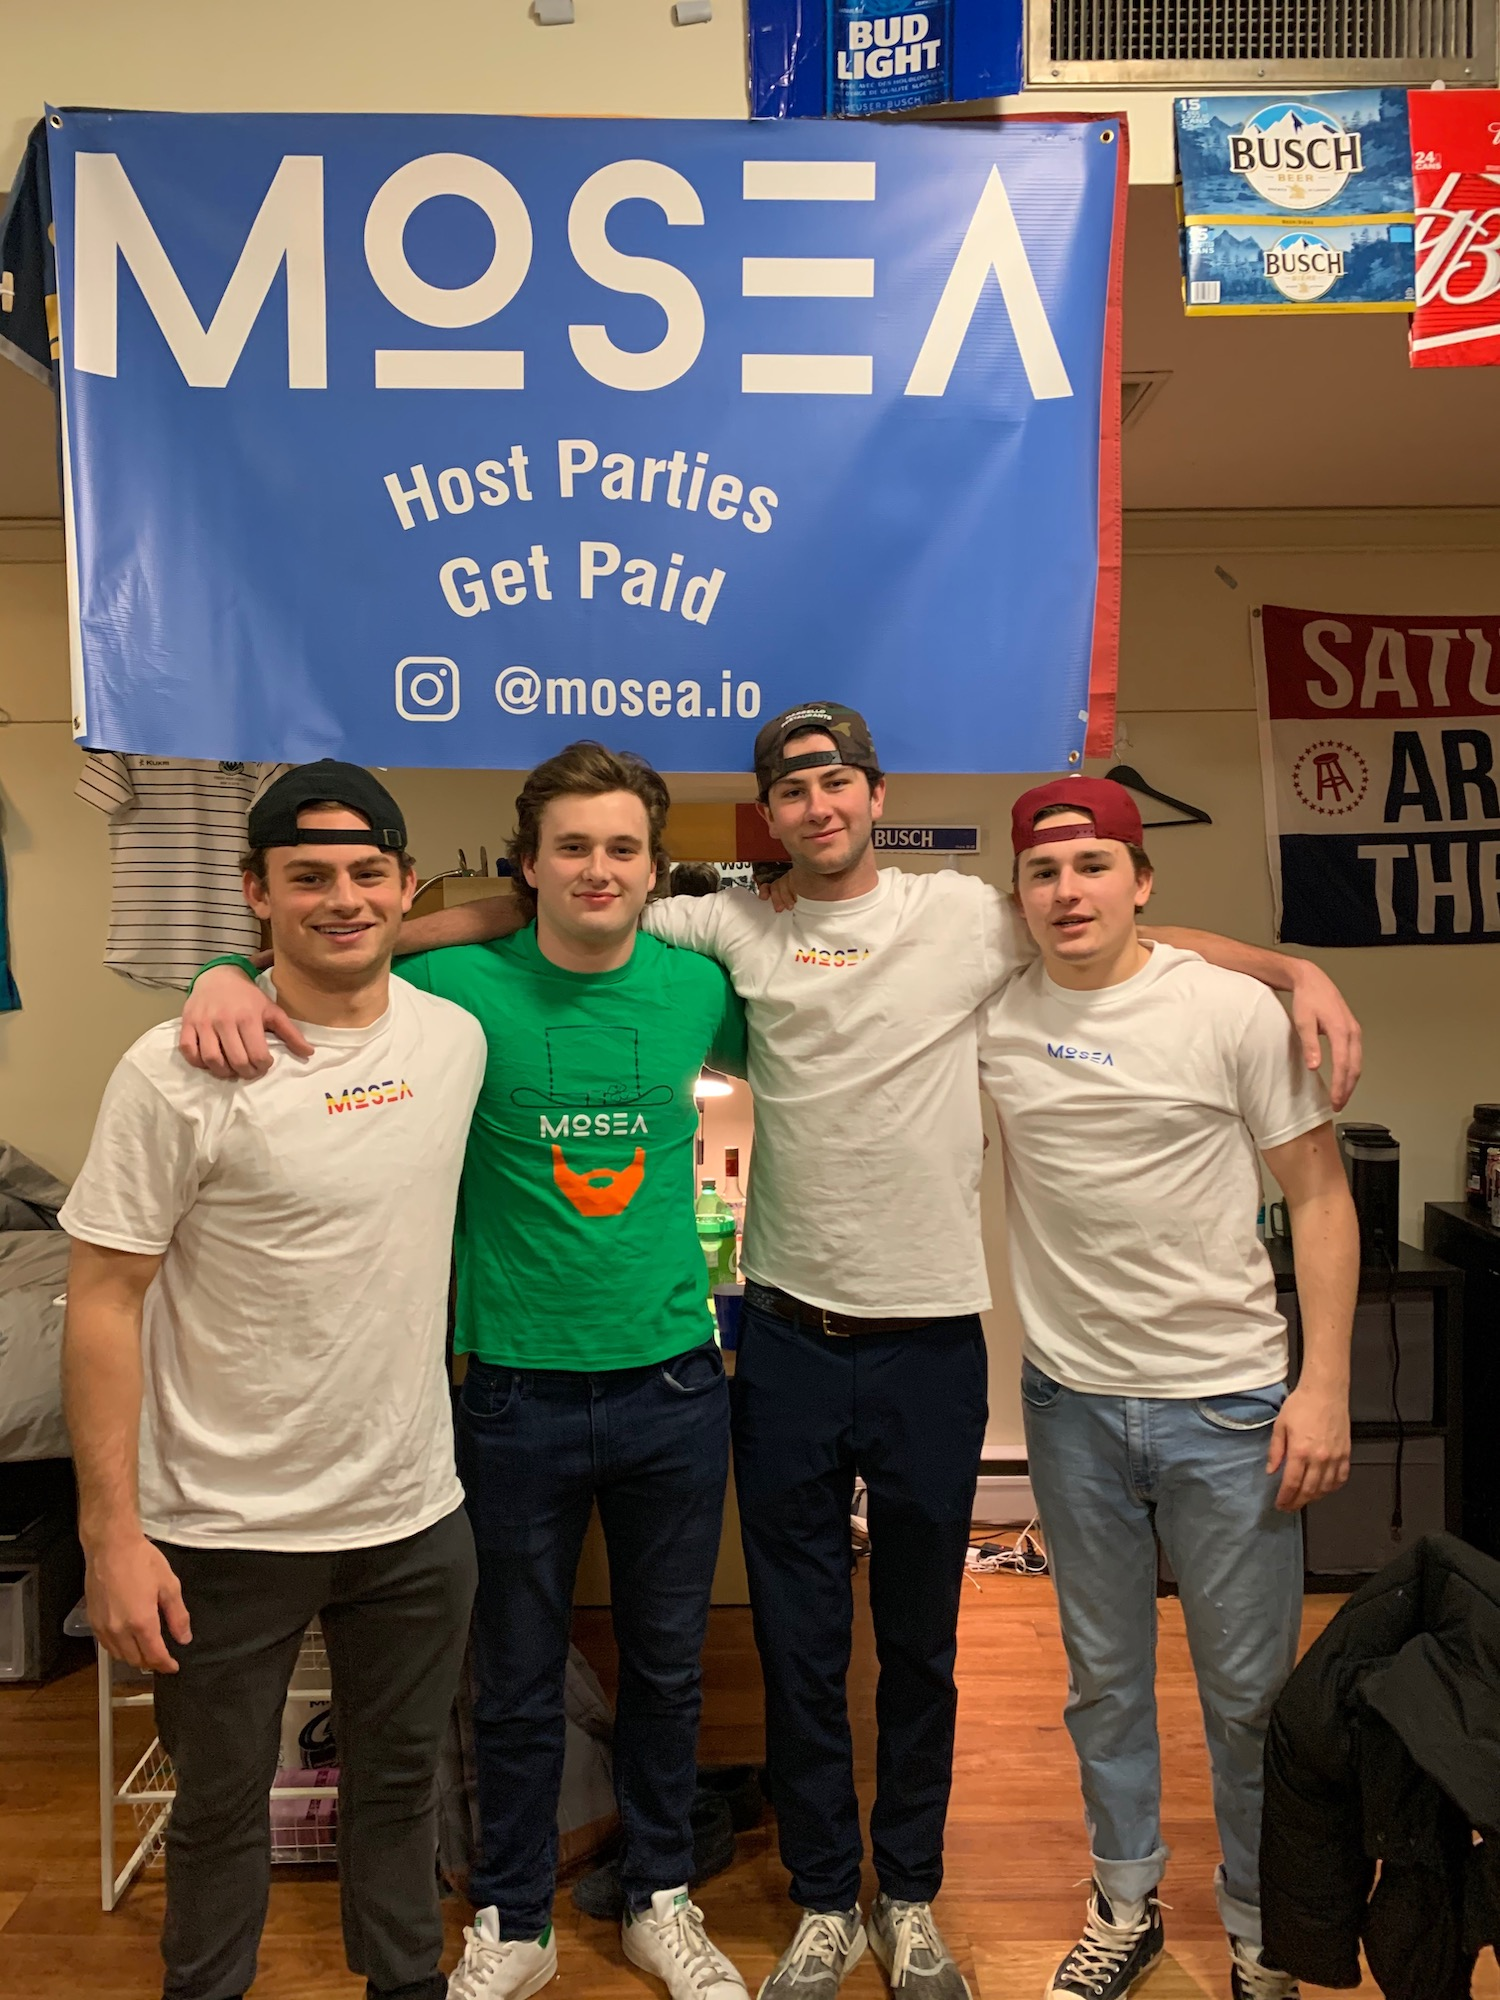 Four guys in Mosea swag standing under Mosea banner